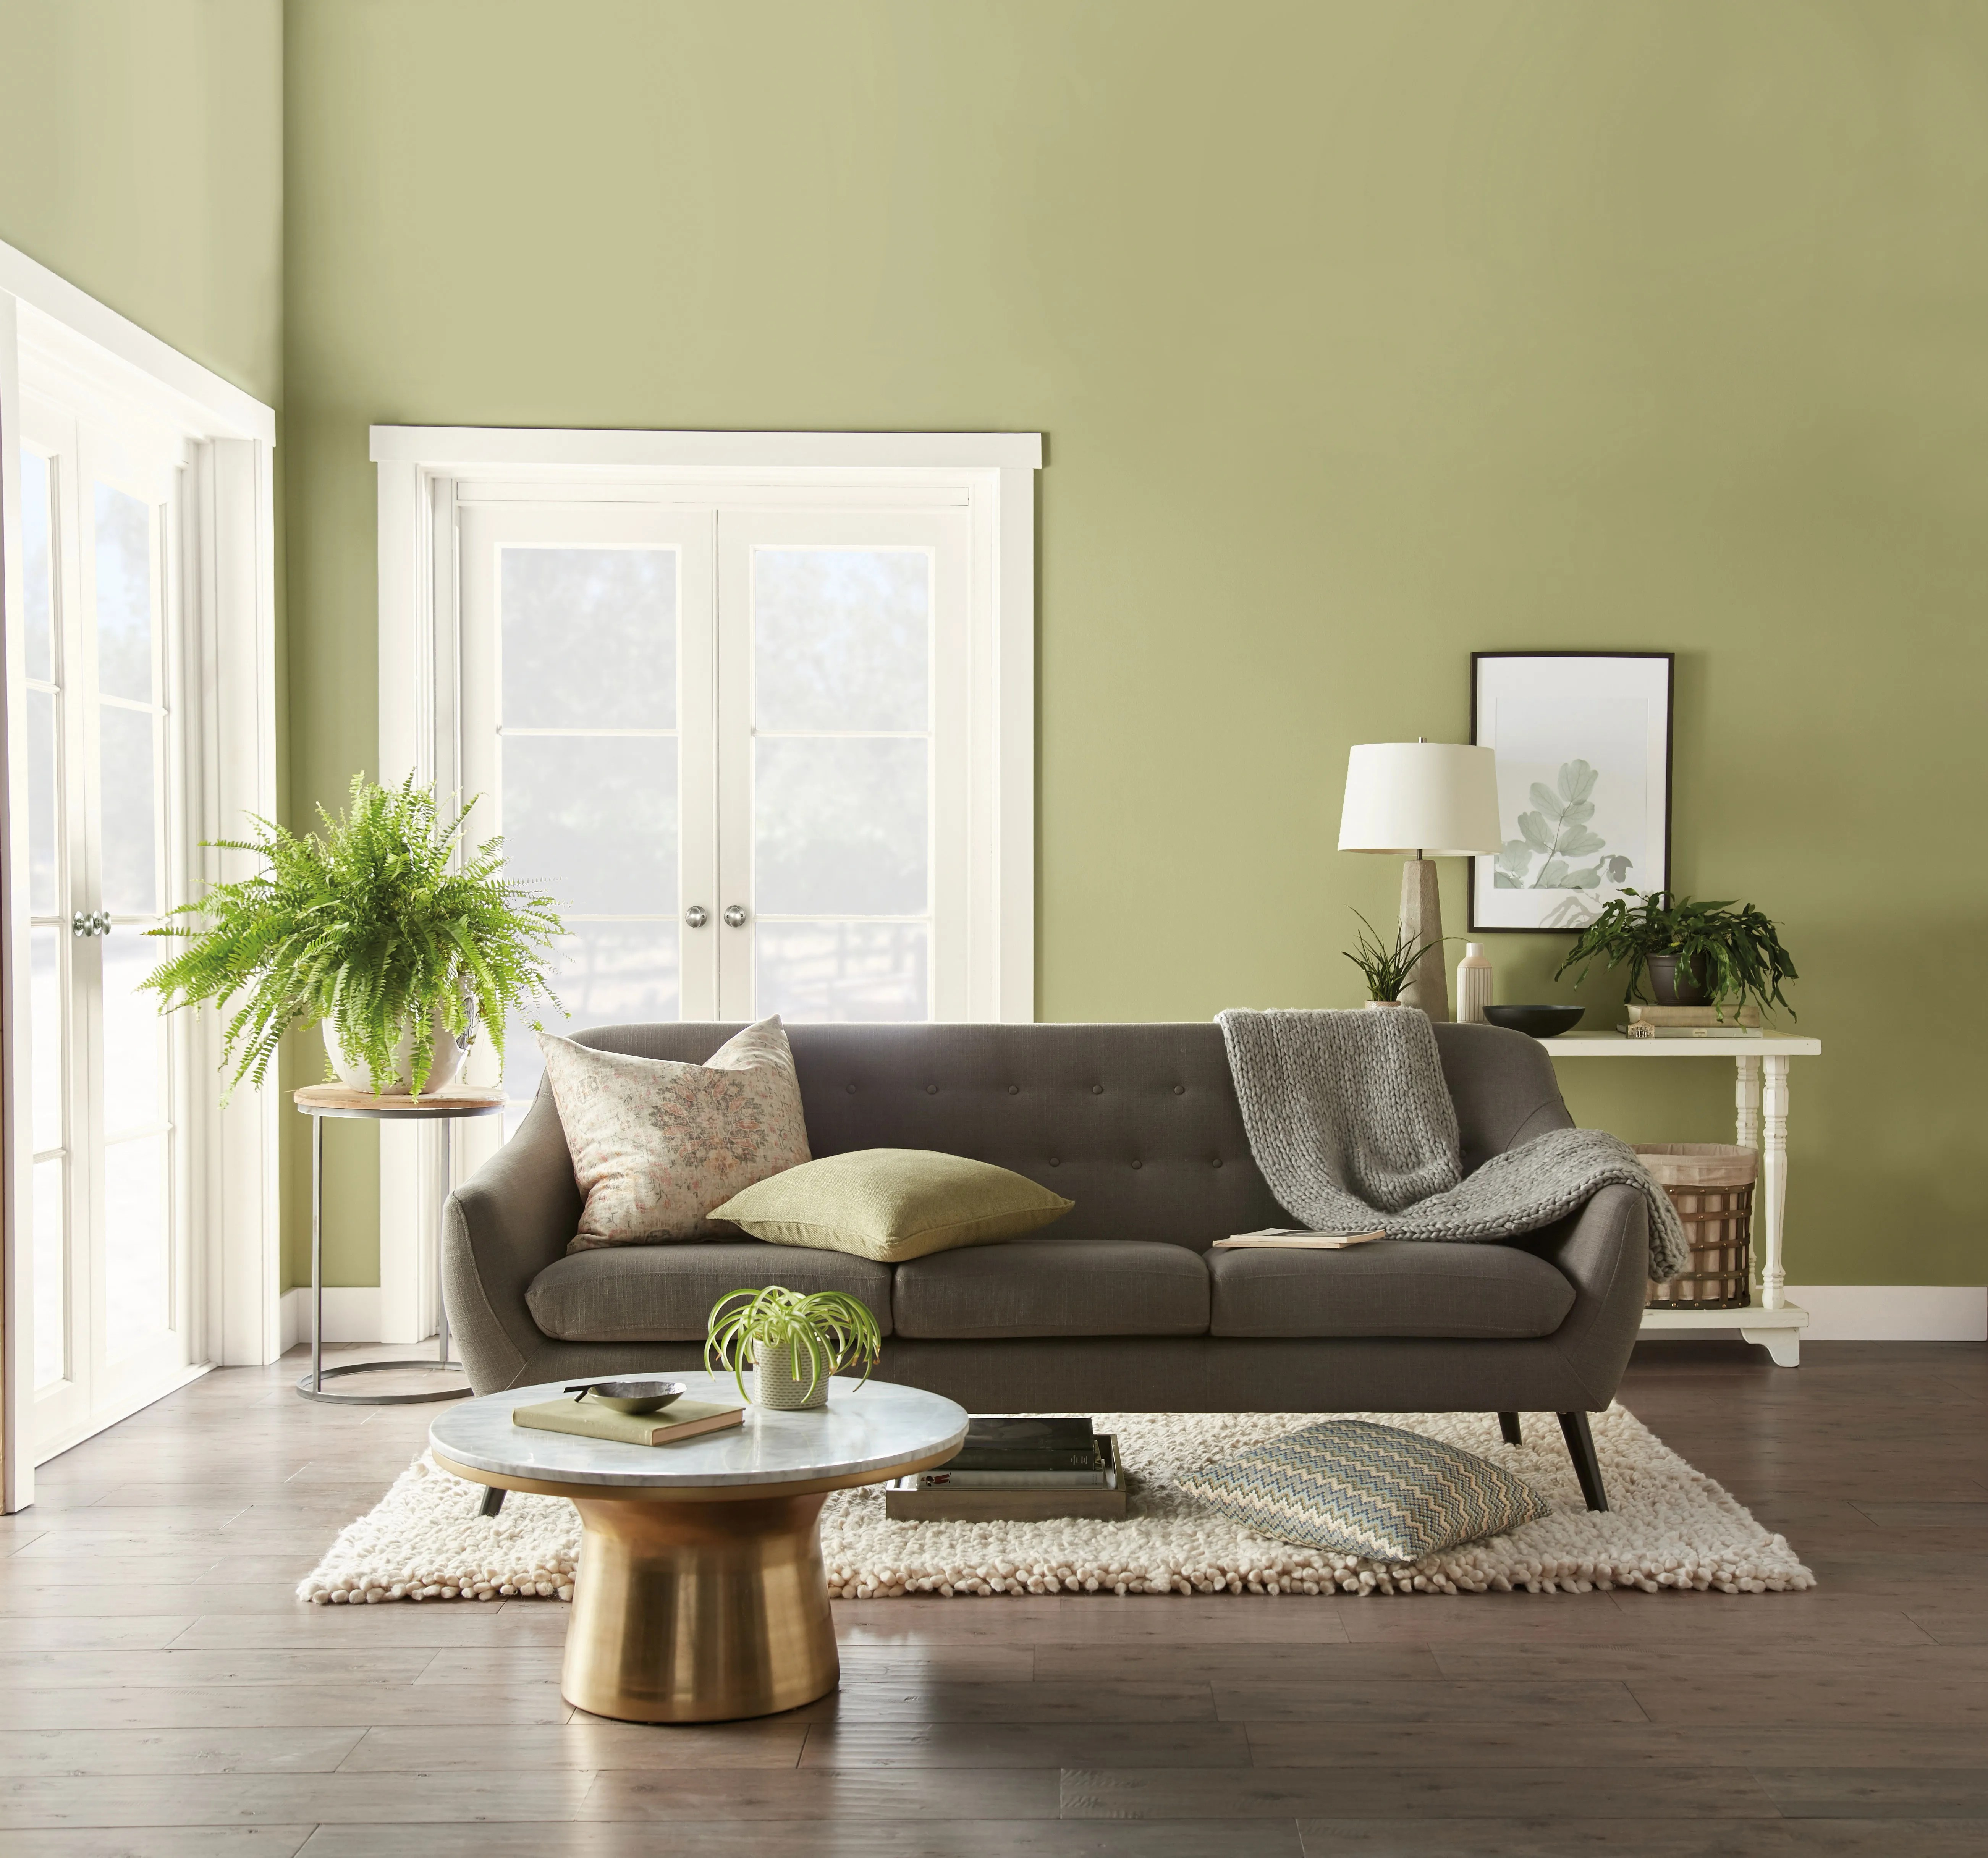 Behr S 2020 Color Of The Year Is Back To Nature